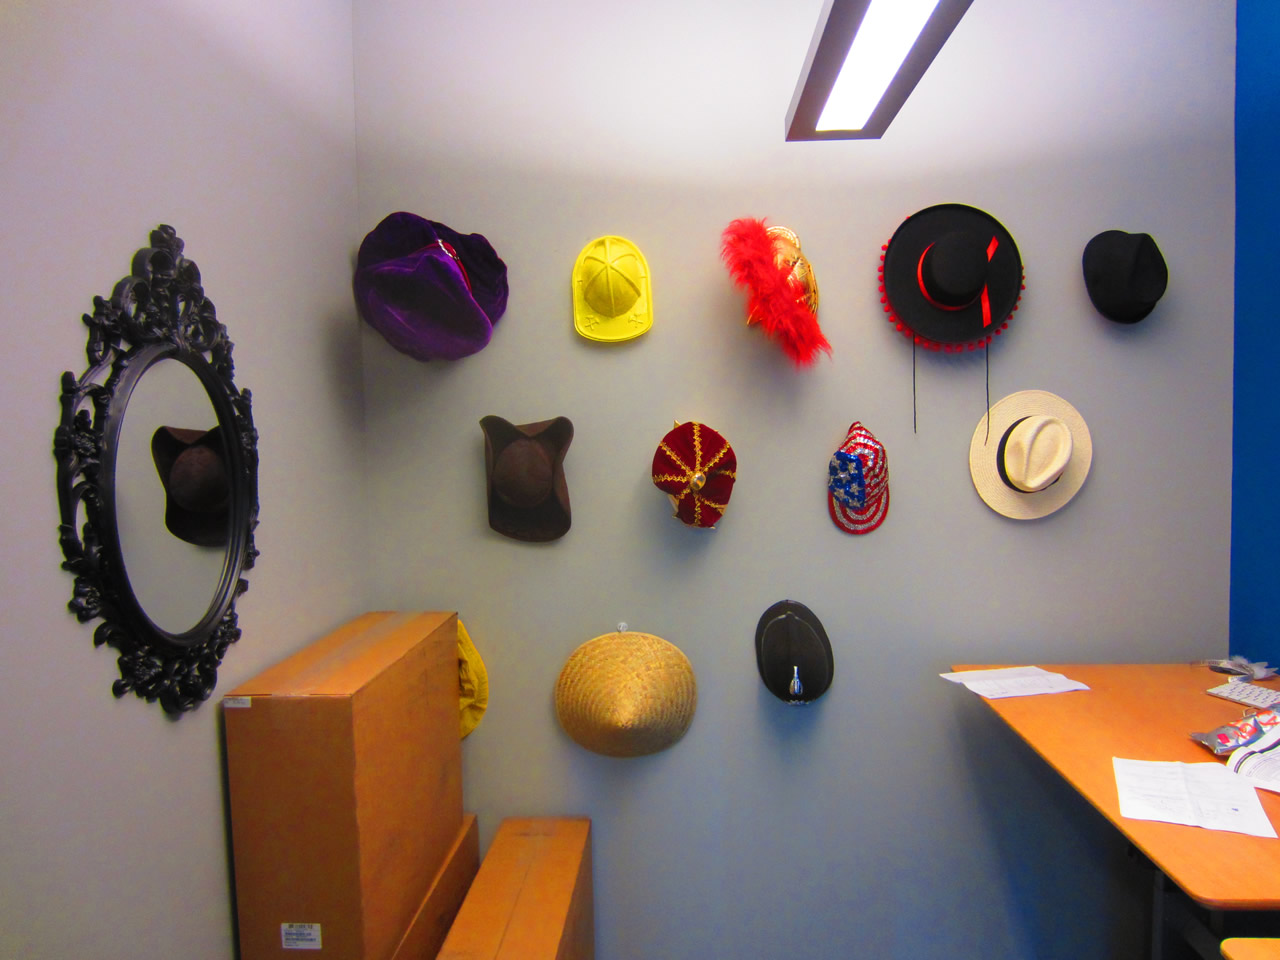 View of hat room, with the hats hanging on the wall and the mirror beside them